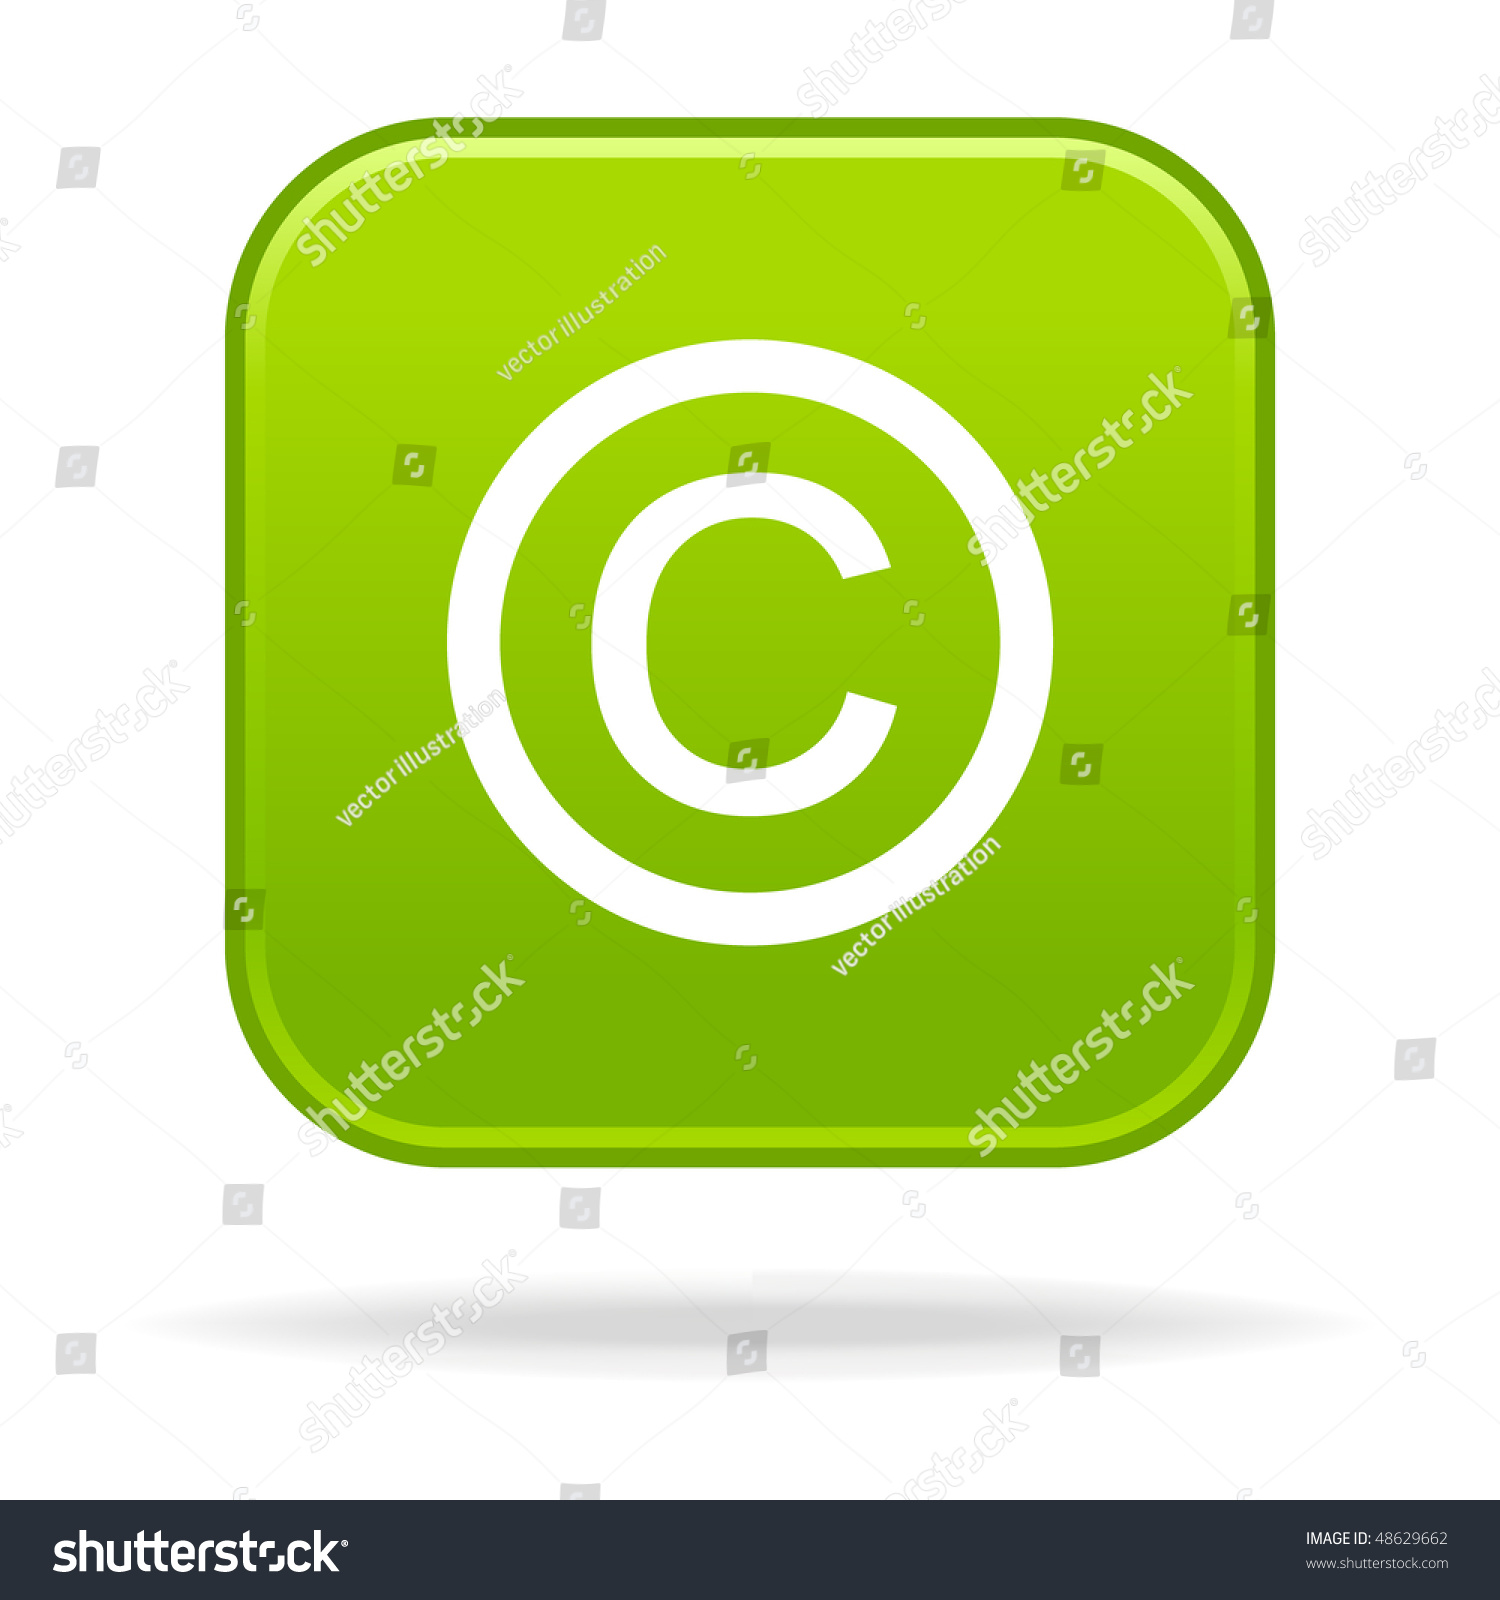 Matted Green Rounded Squares Buttons With Copyright Symbol And